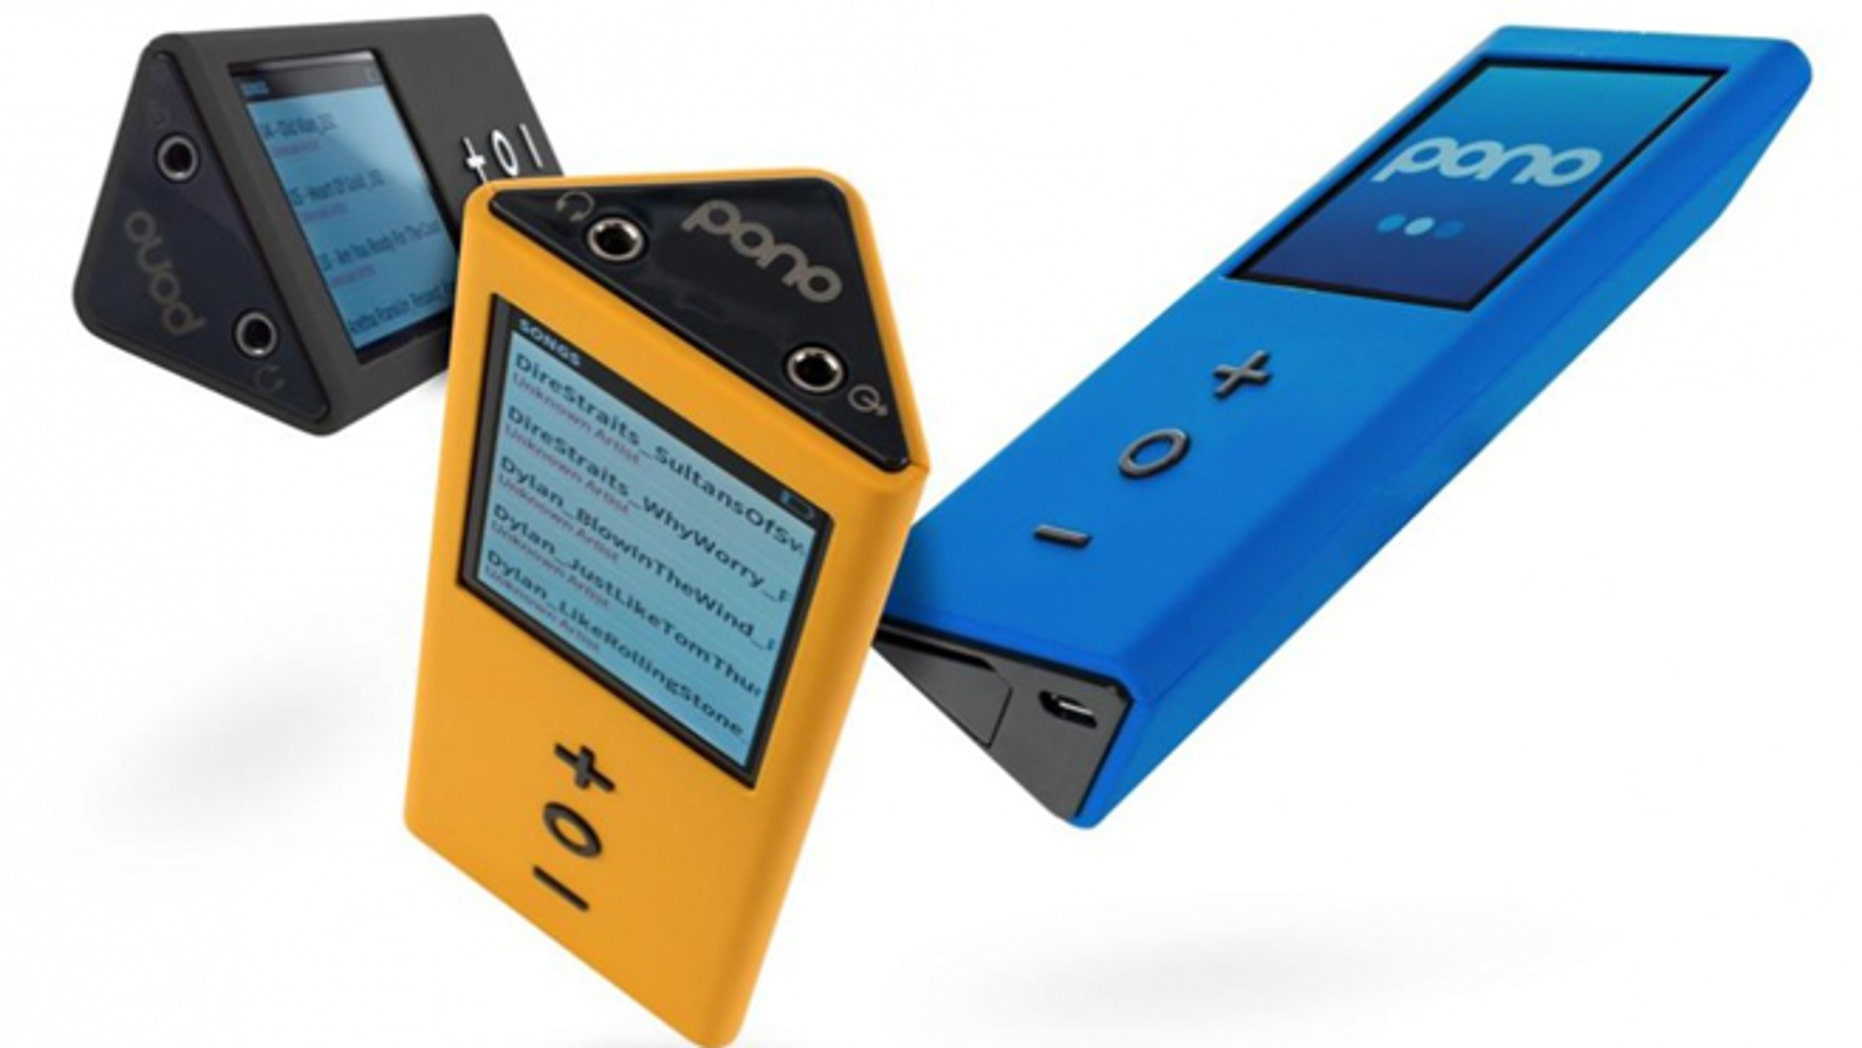 Neil Young's high-fidelity digital audio player will launch March 15 on Kickstarter.